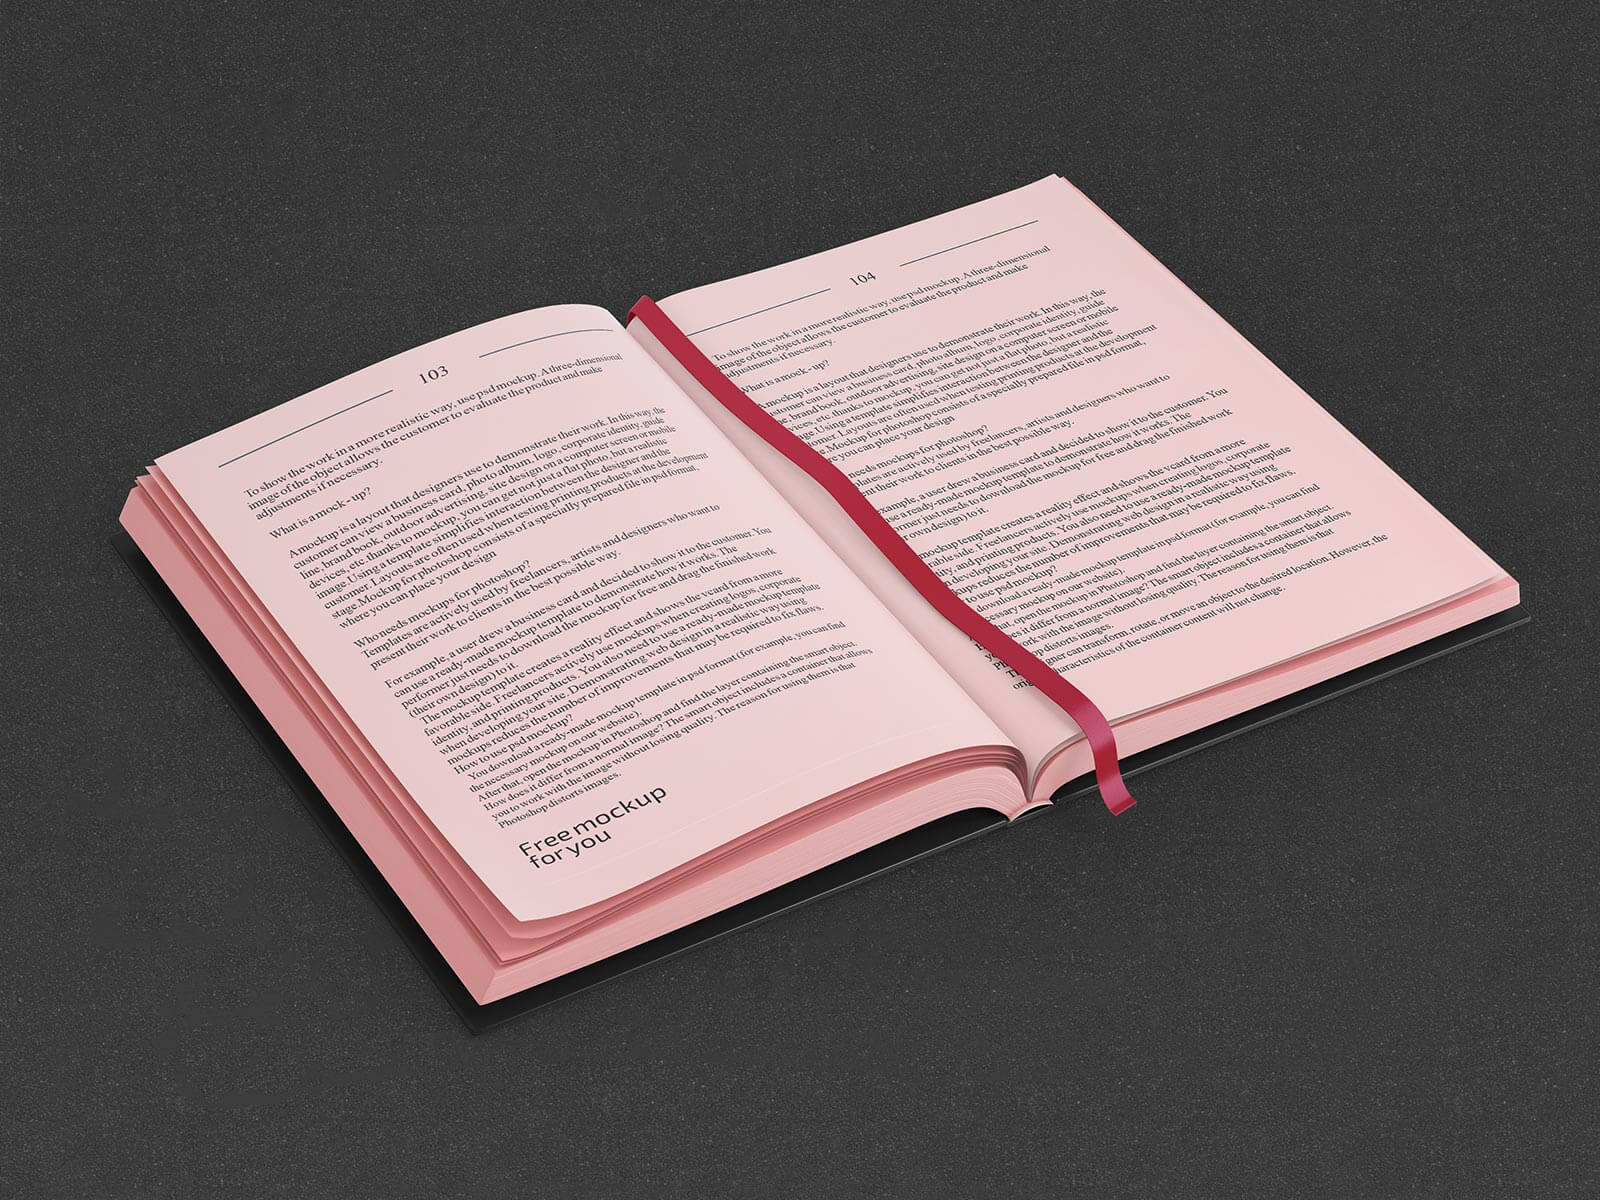 Free Hardcover Title & Inner Pages Mockup PSD Set (2)